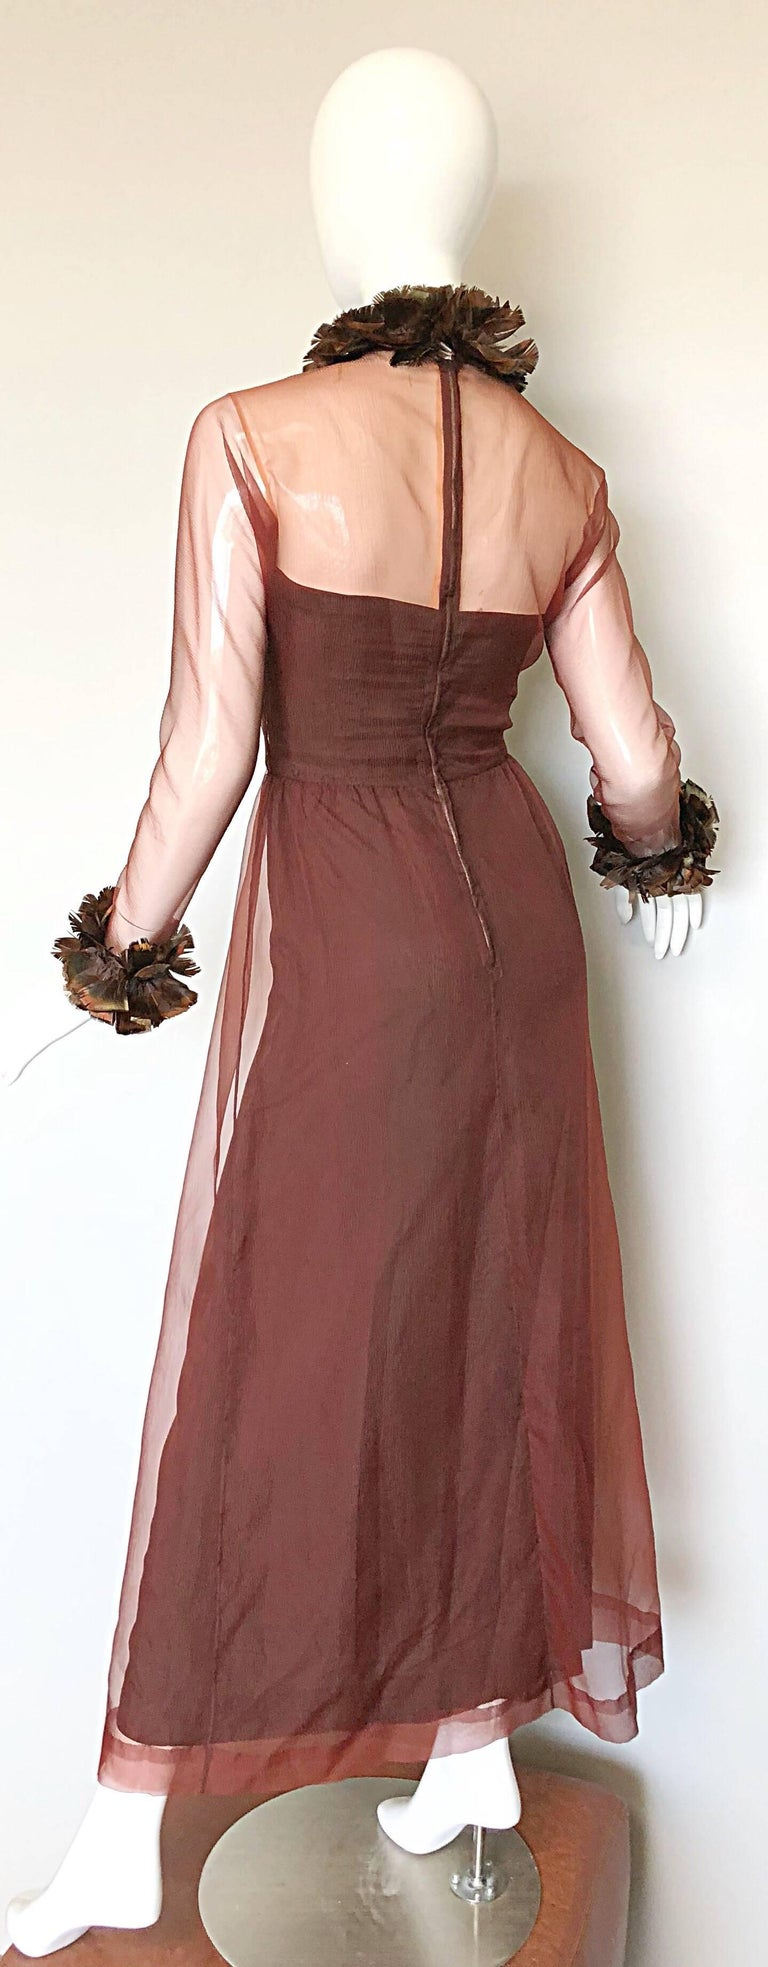 Vintage Givenchy Couture Numbered 1960s Chocolate Brown Feathered Chiffon Gown For Sale 4